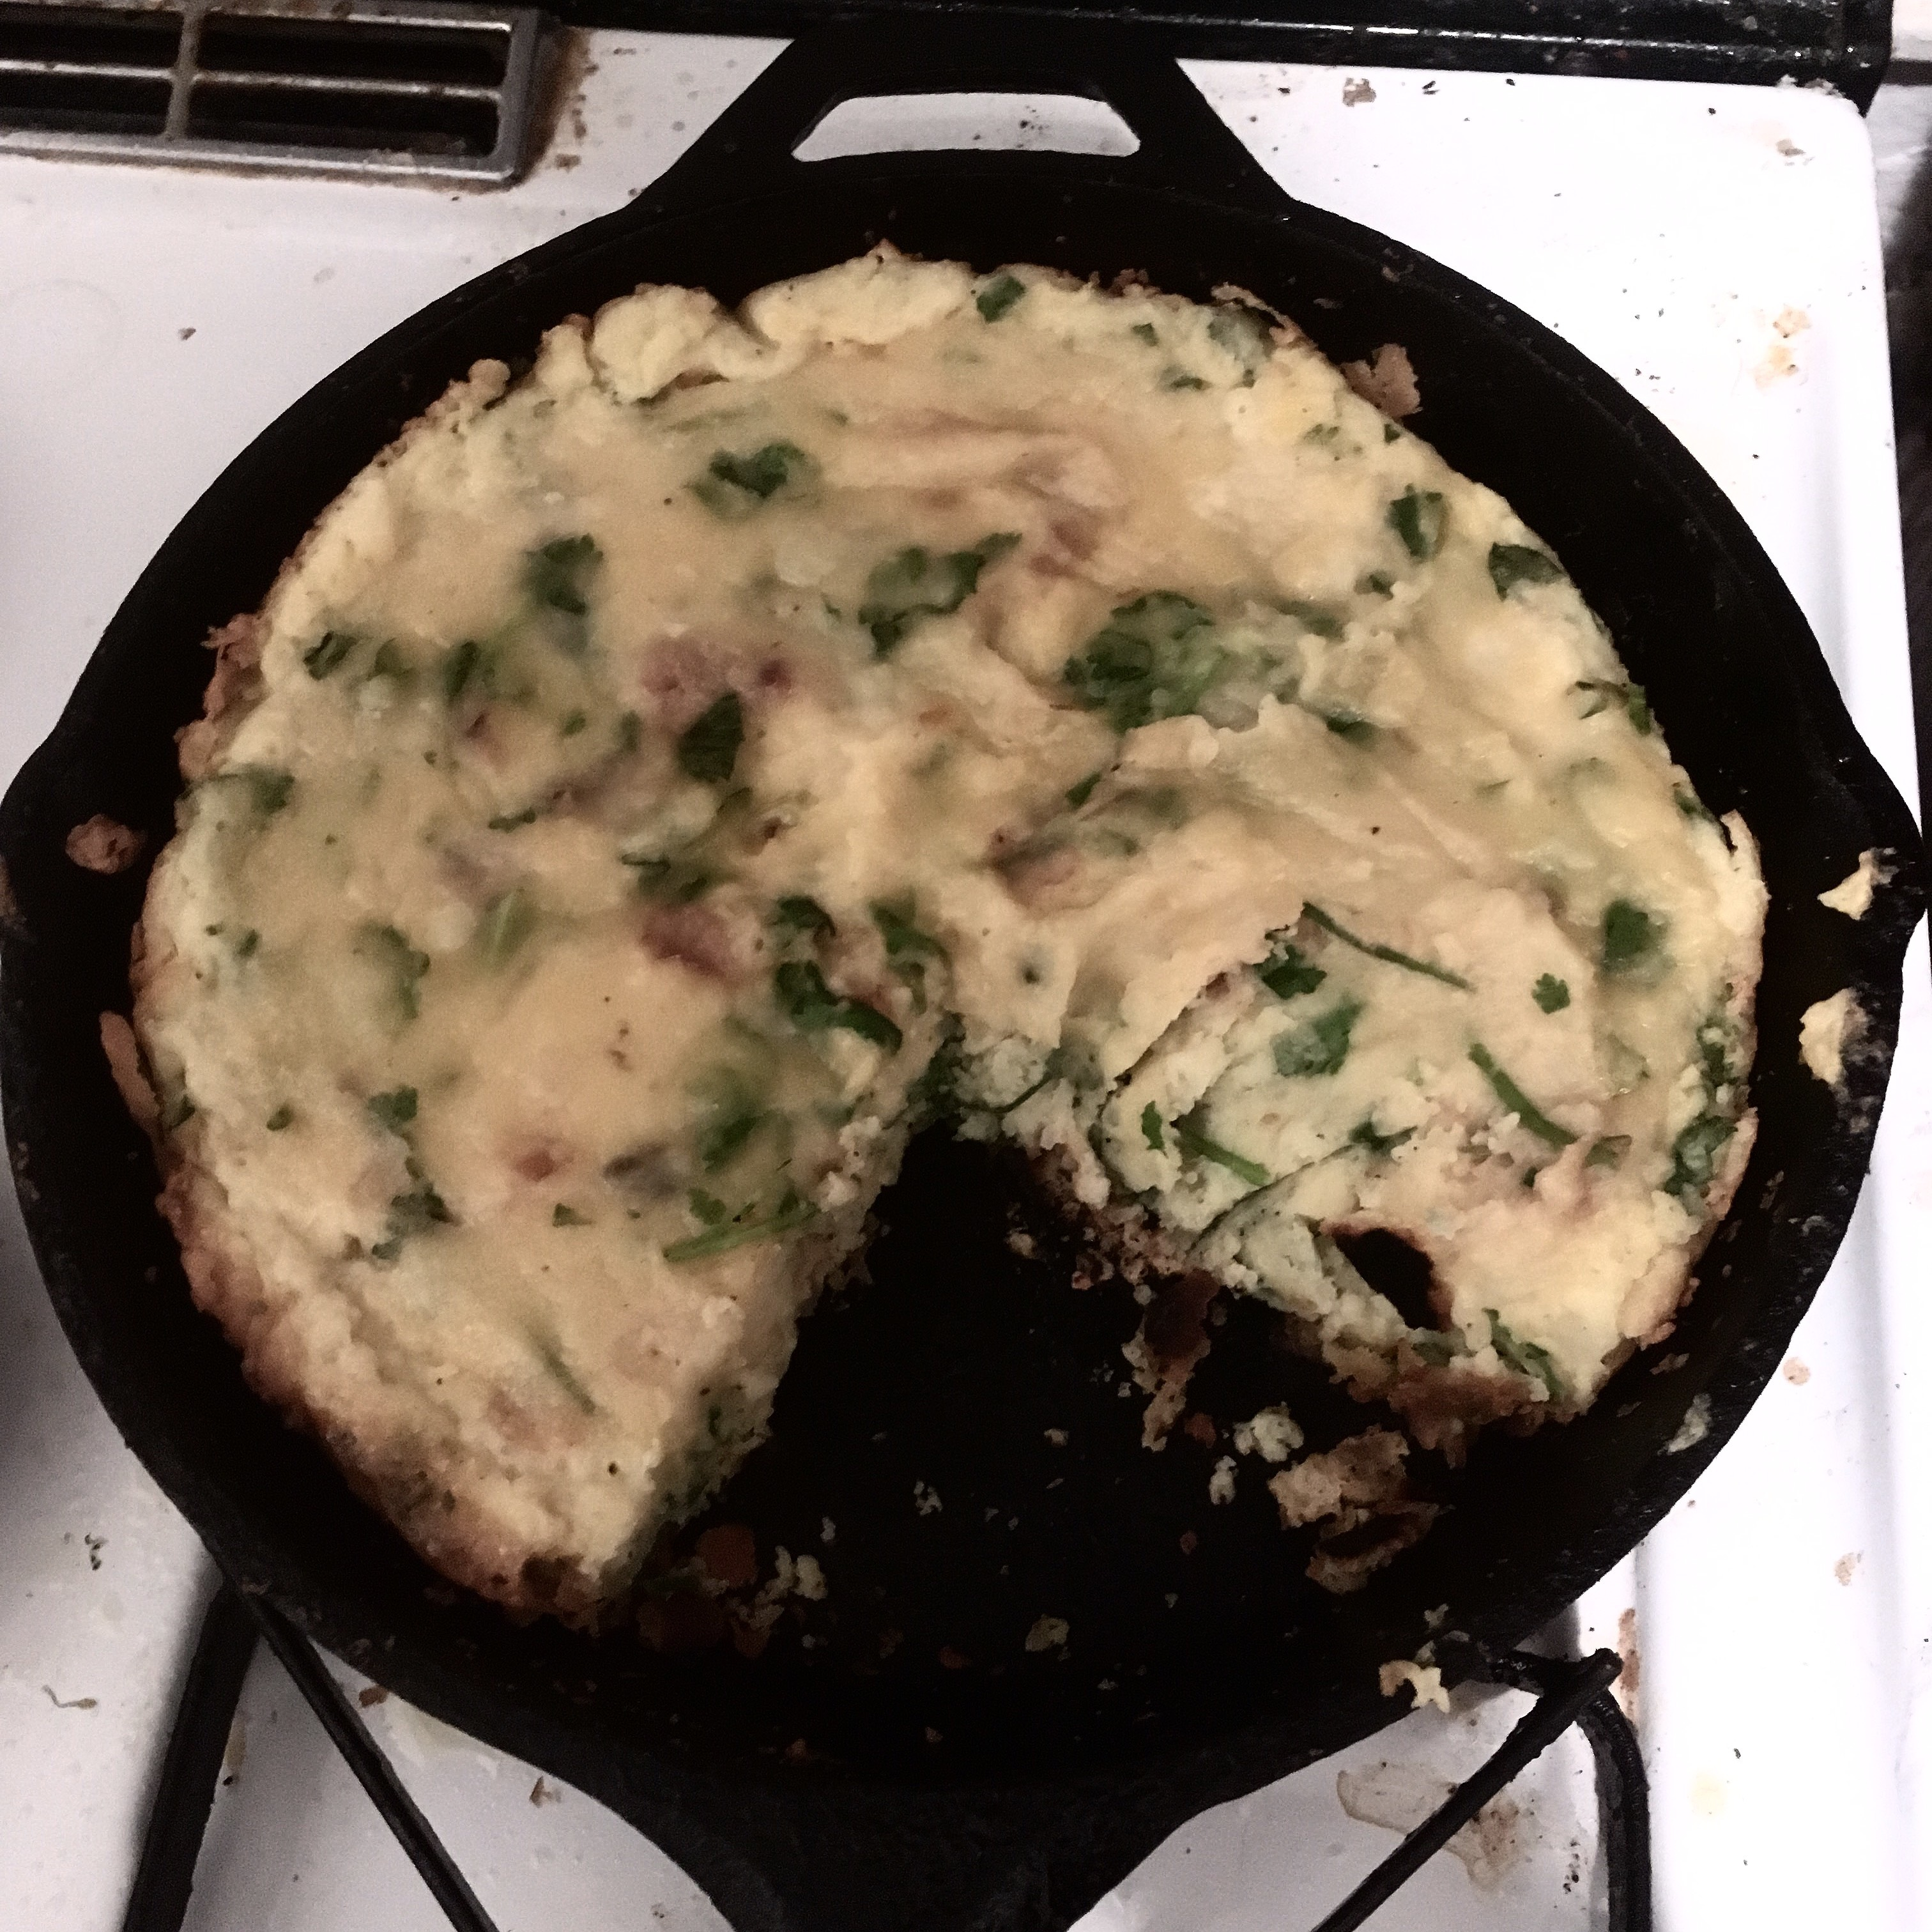 Potato frittata with cilantro and chilies in a cast-iron pan with a missing section cut out